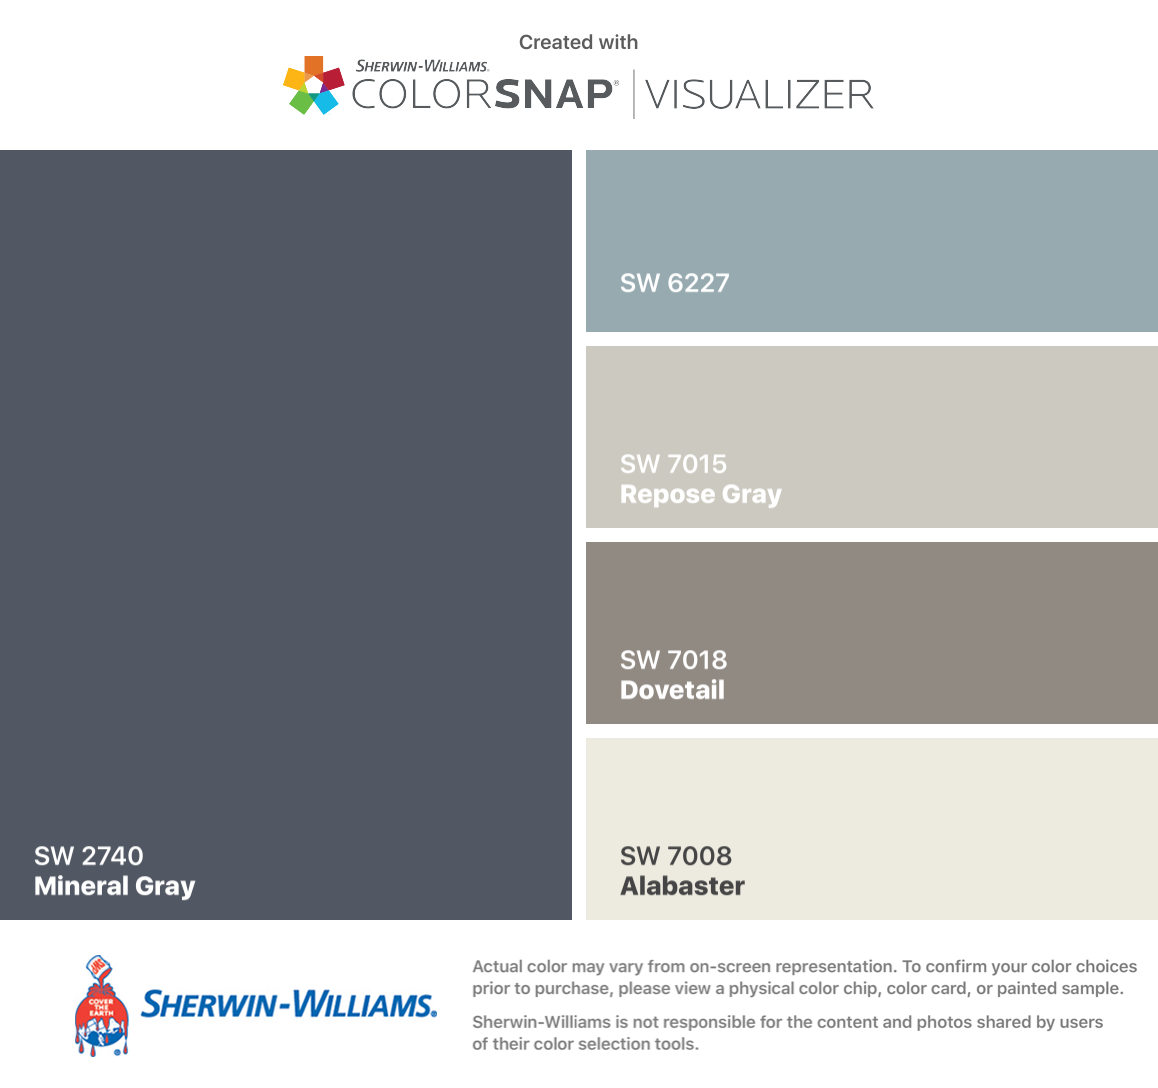 Divine White Sherwin Williams I Found These Colors With Colorsnap 174 Visualizer For Iphone